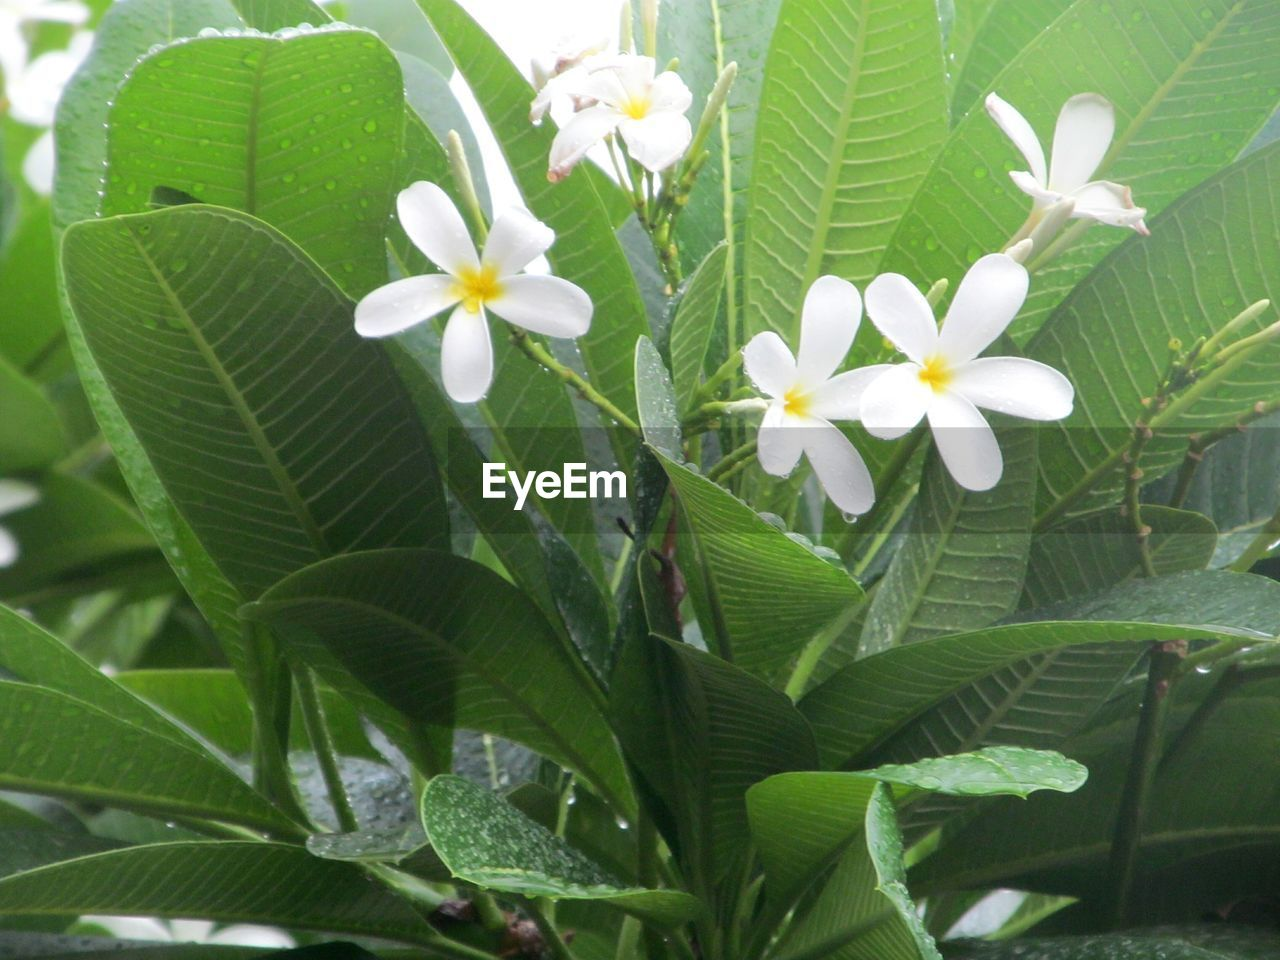 flower, leaf, growth, freshness, green color, fragility, nature, beauty in nature, plant, petal, flower head, day, outdoors, blooming, no people, close-up, periwinkle, frangipani